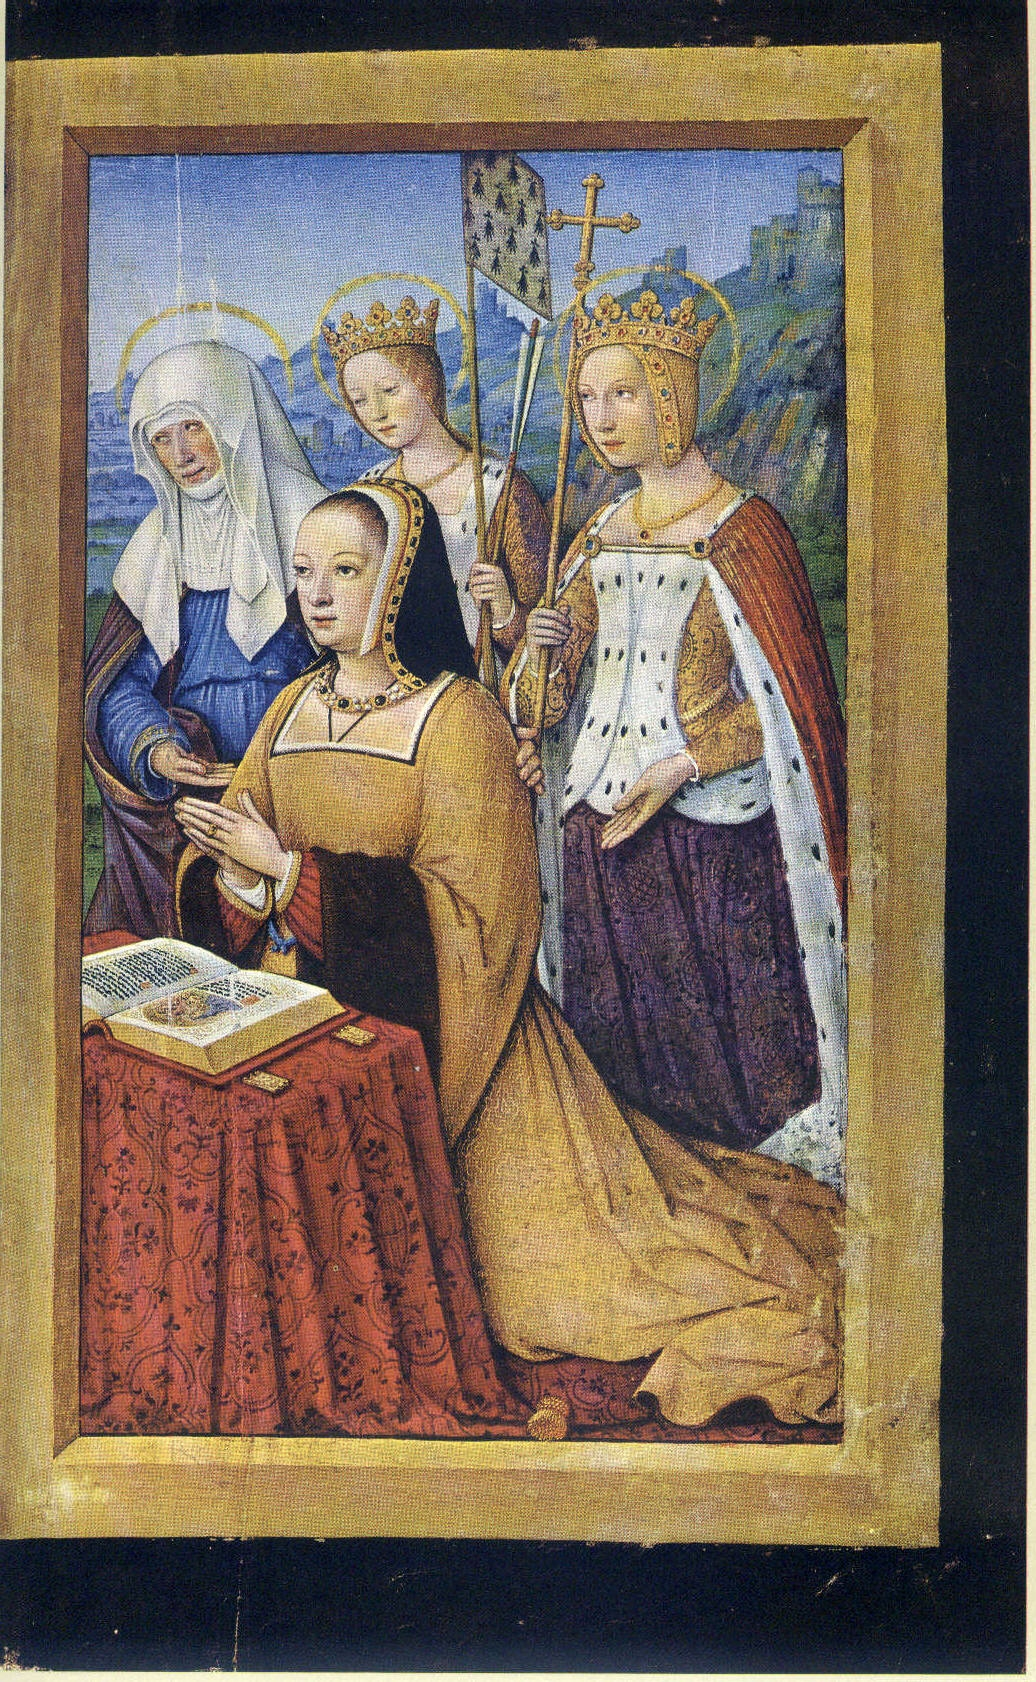 1500-1508 - Jean Bourdichon - Hours of Anne of Bretagne